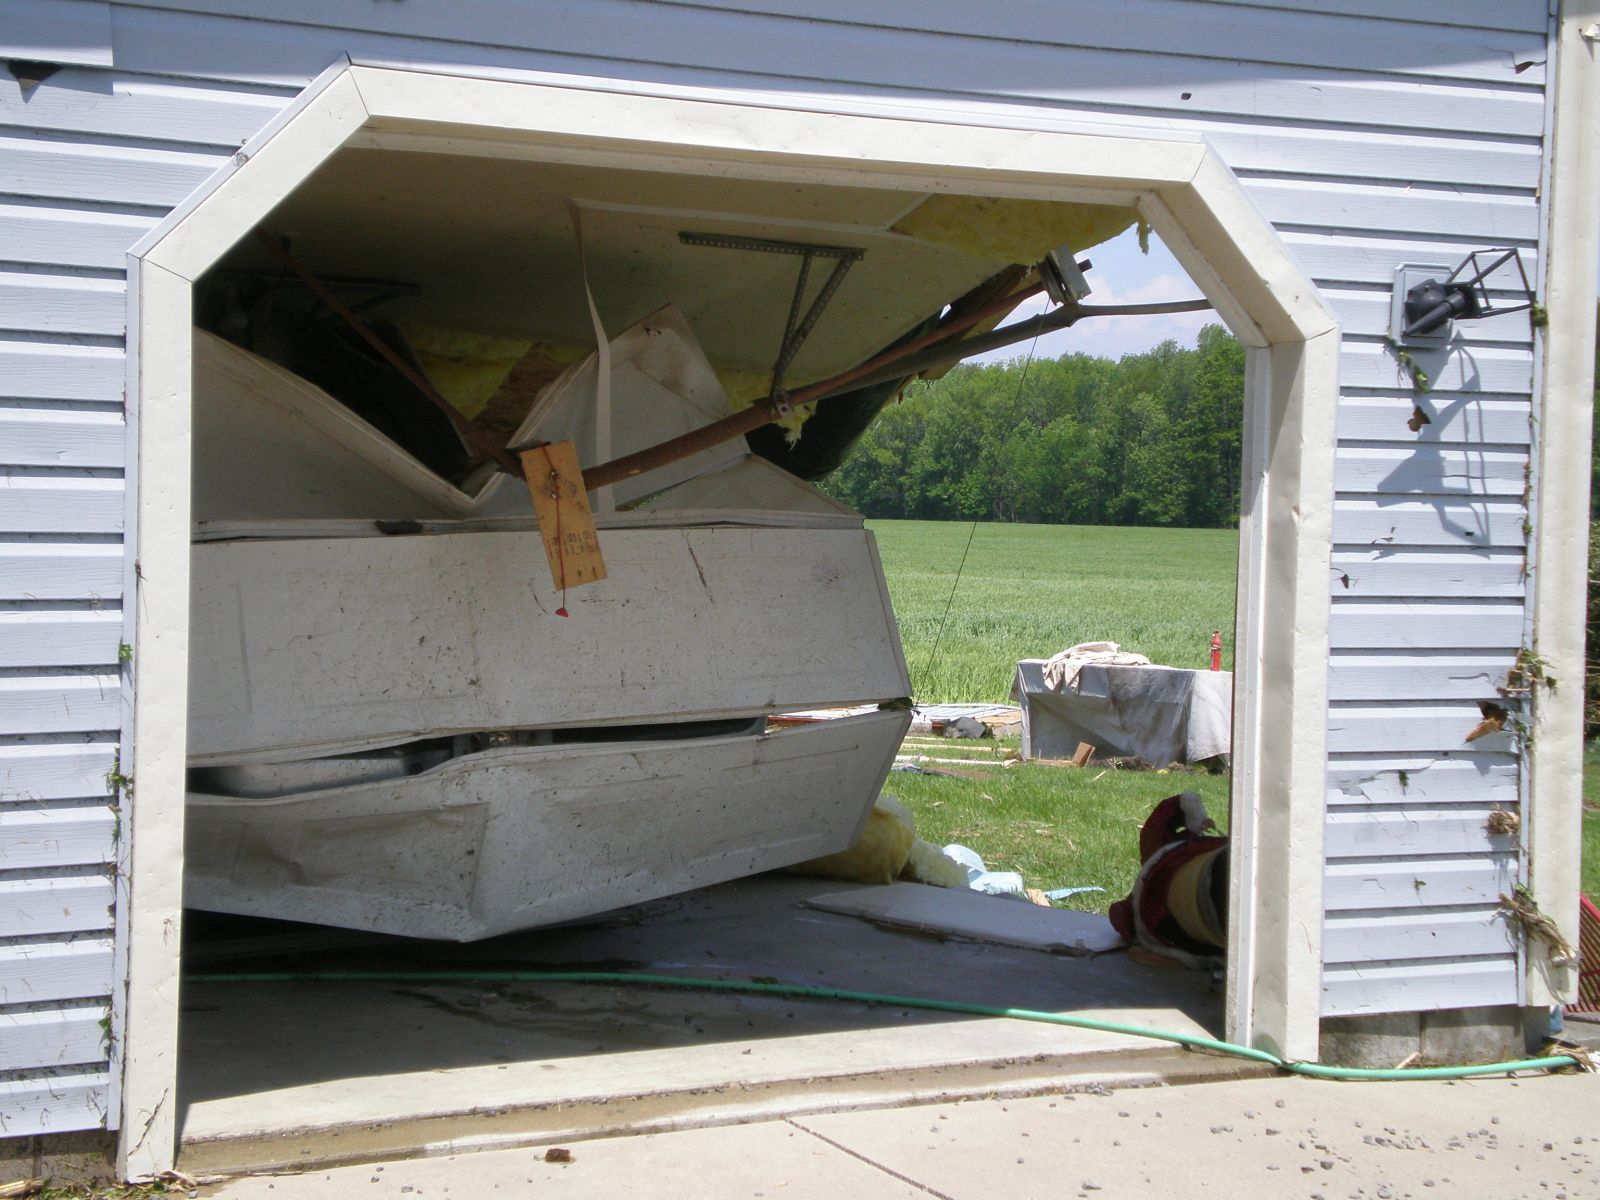 garage door blown in with side garage wall missing